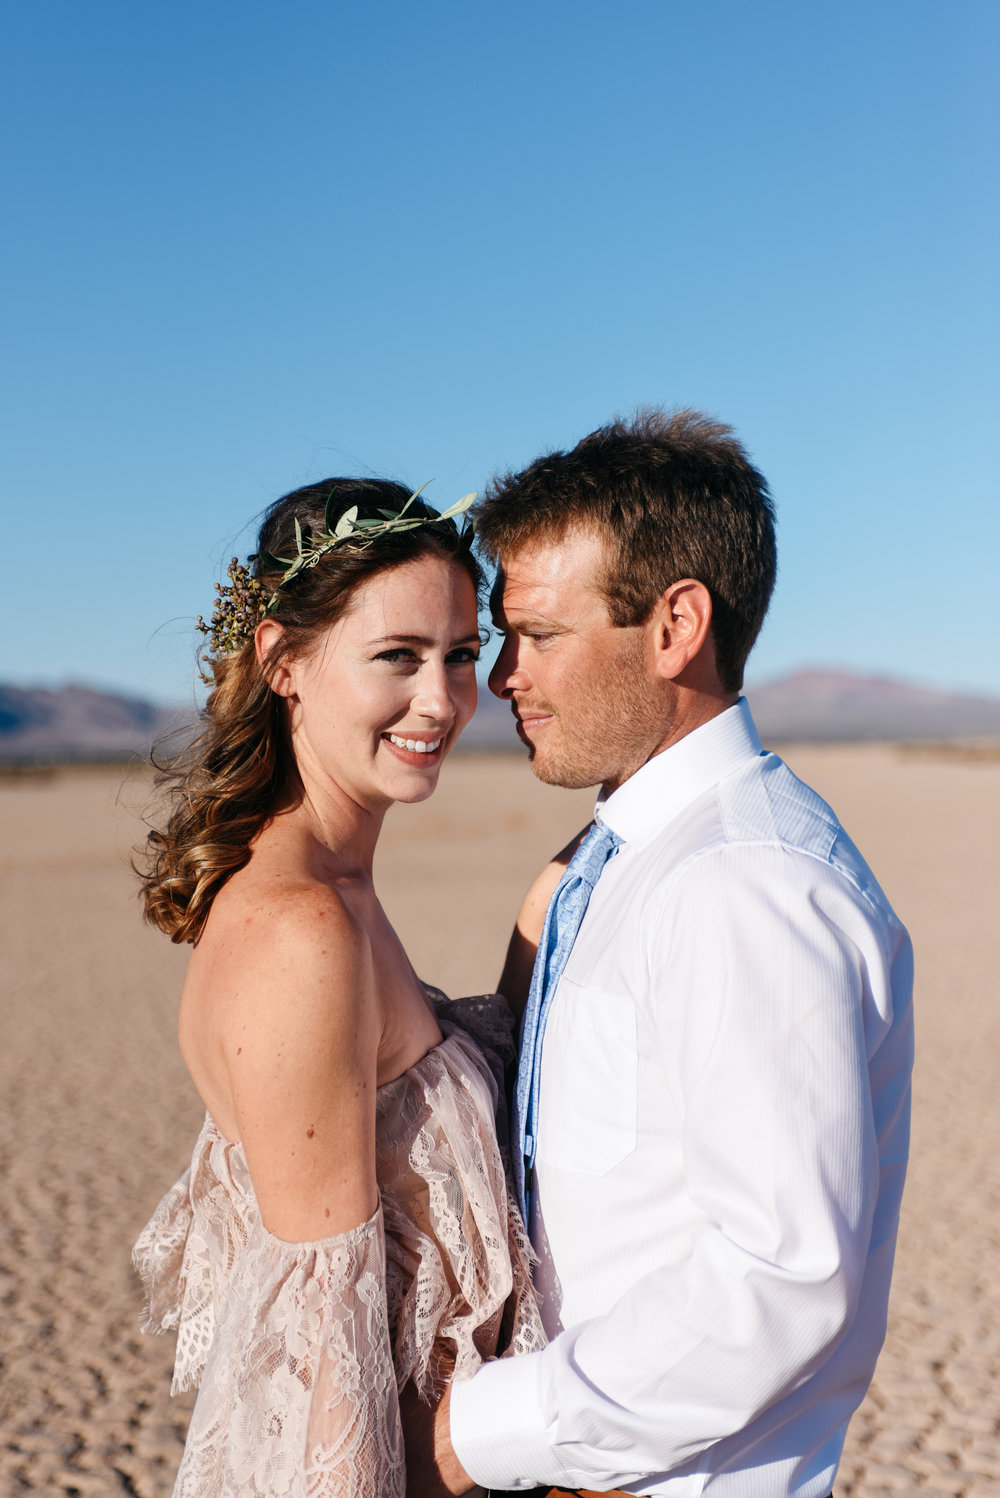 pop up wedding elopement photography las vegas wedding photography ashley marie meyrs-65 copy.jpg